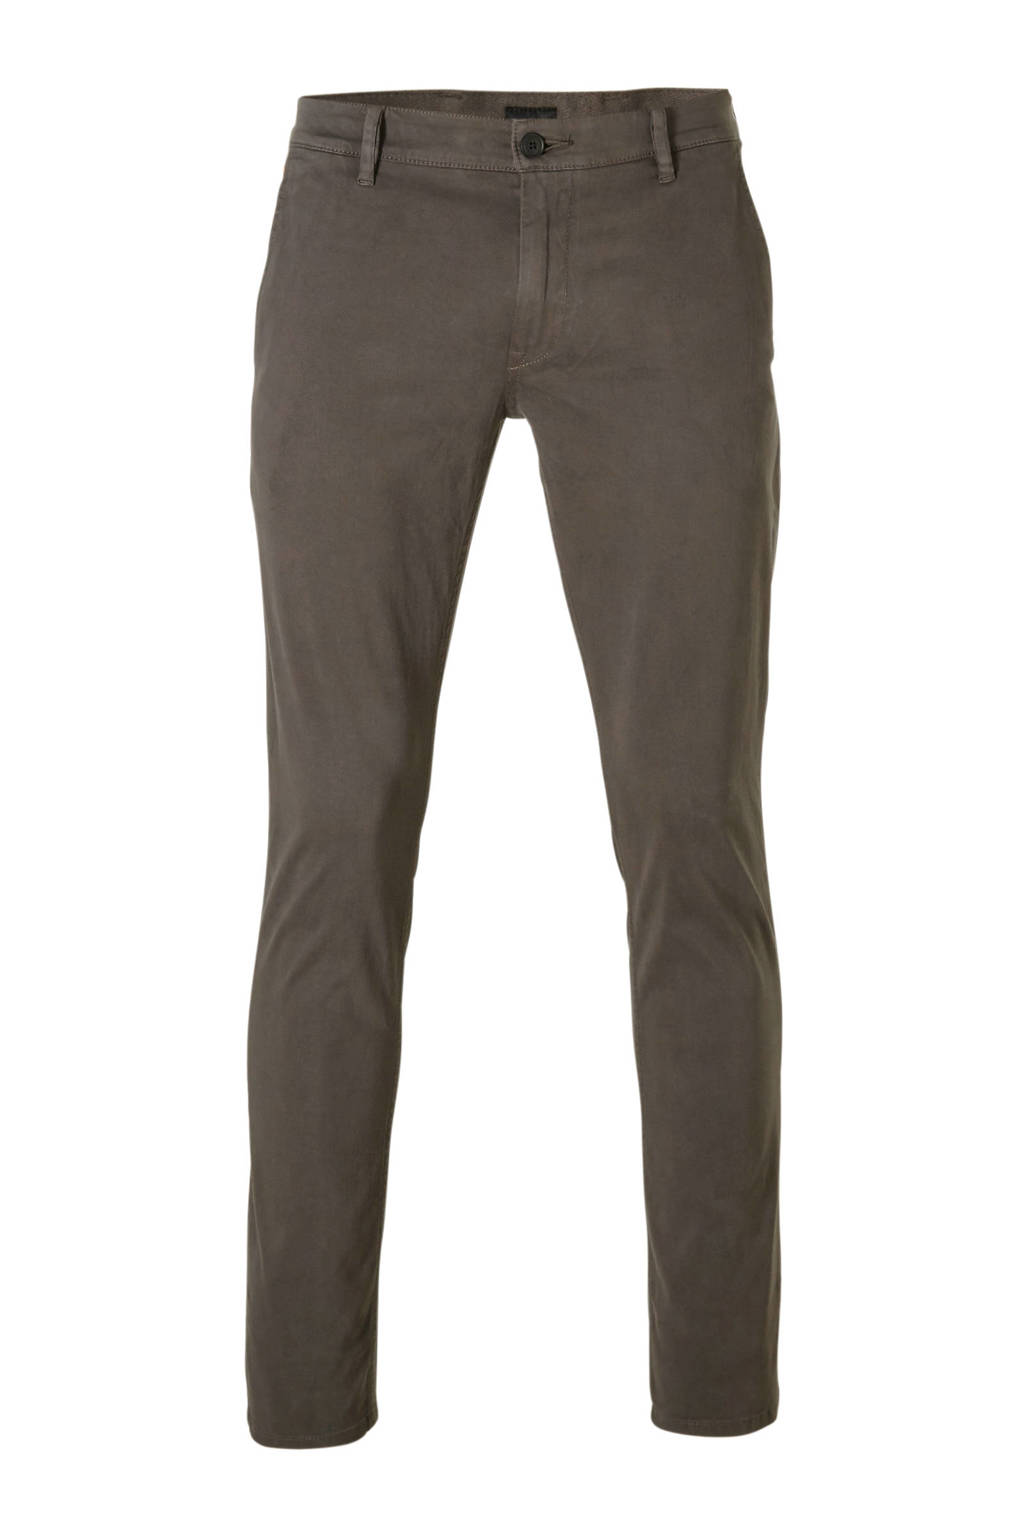 Boss Casual slim fit chino grijs, Grijs